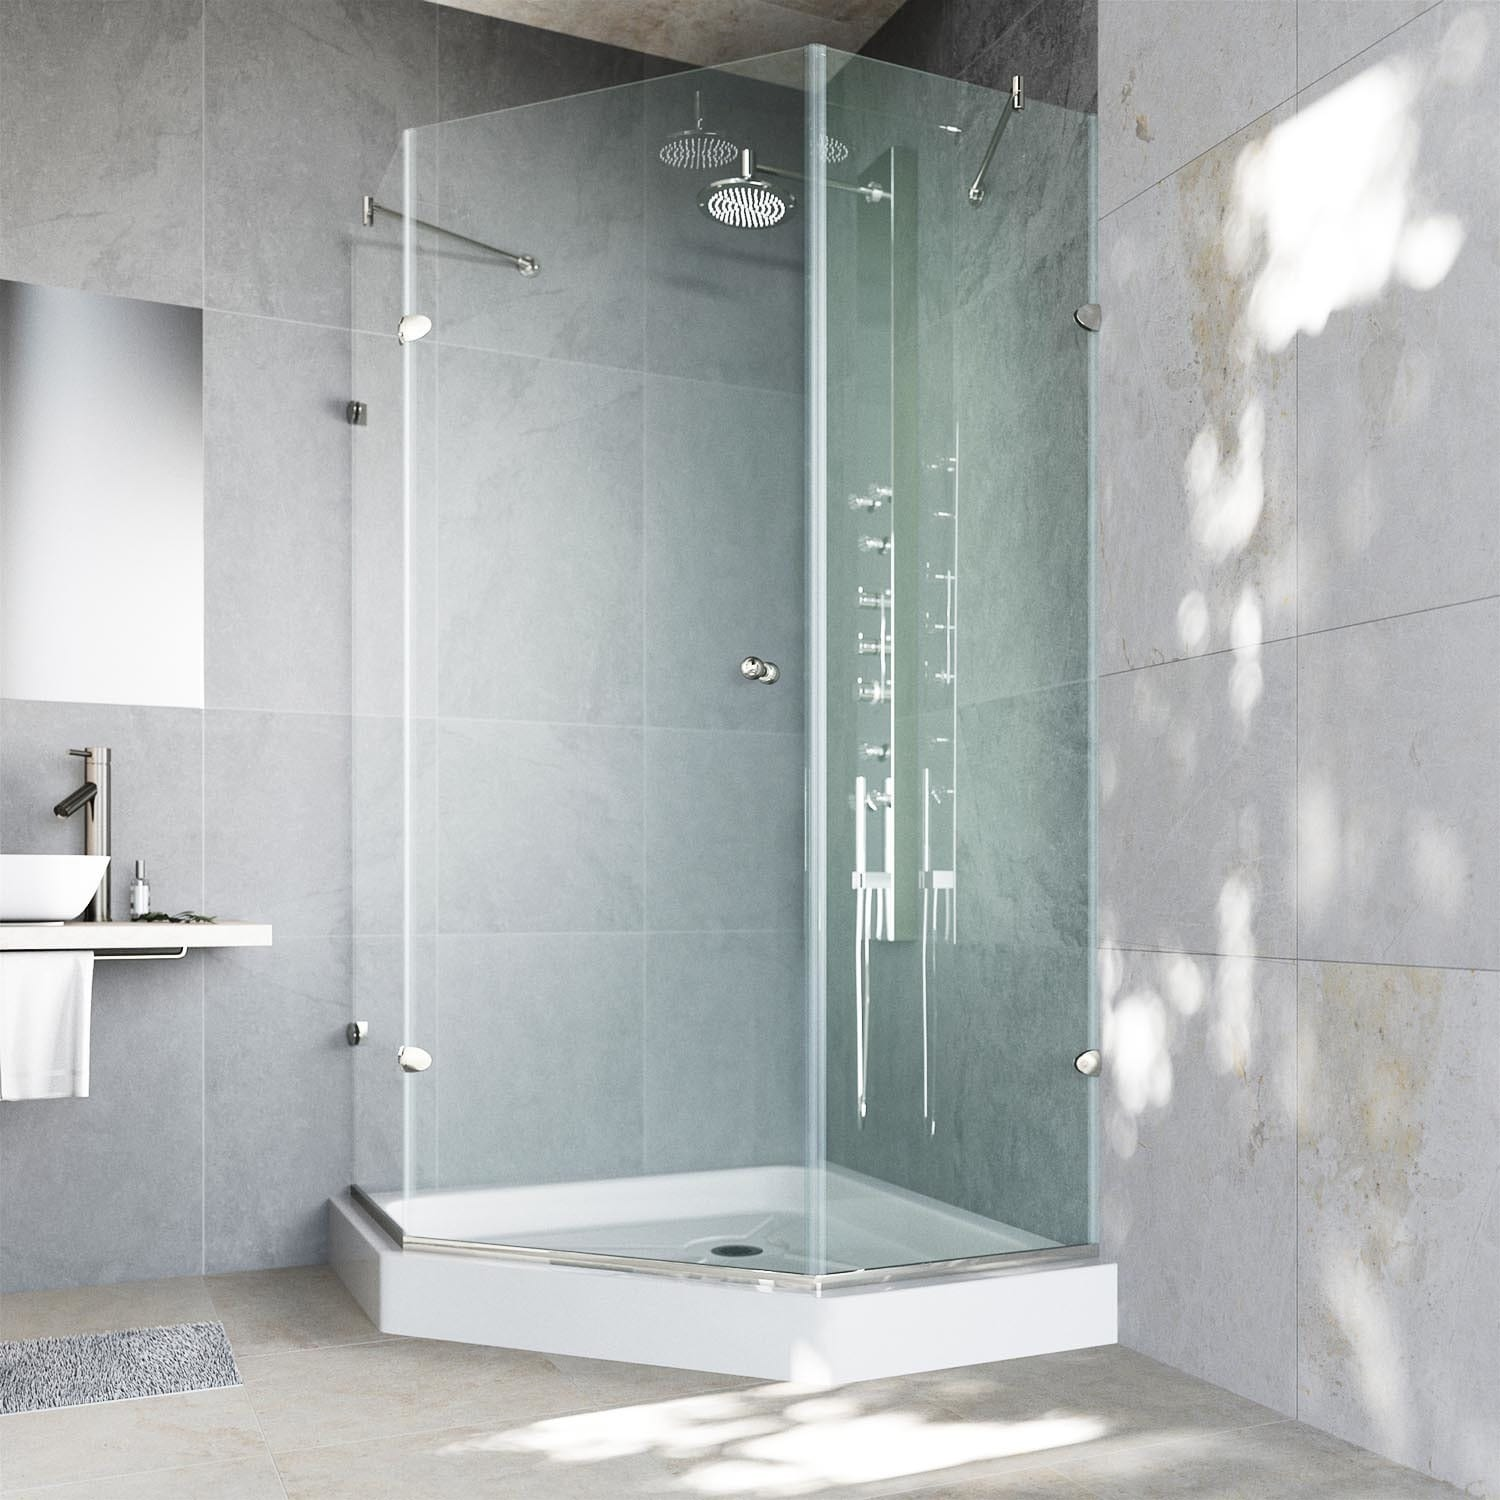 Details About Vigo Frameless Neo Angle 3 8 Inch Clear Glass Shower Brushed Nickel